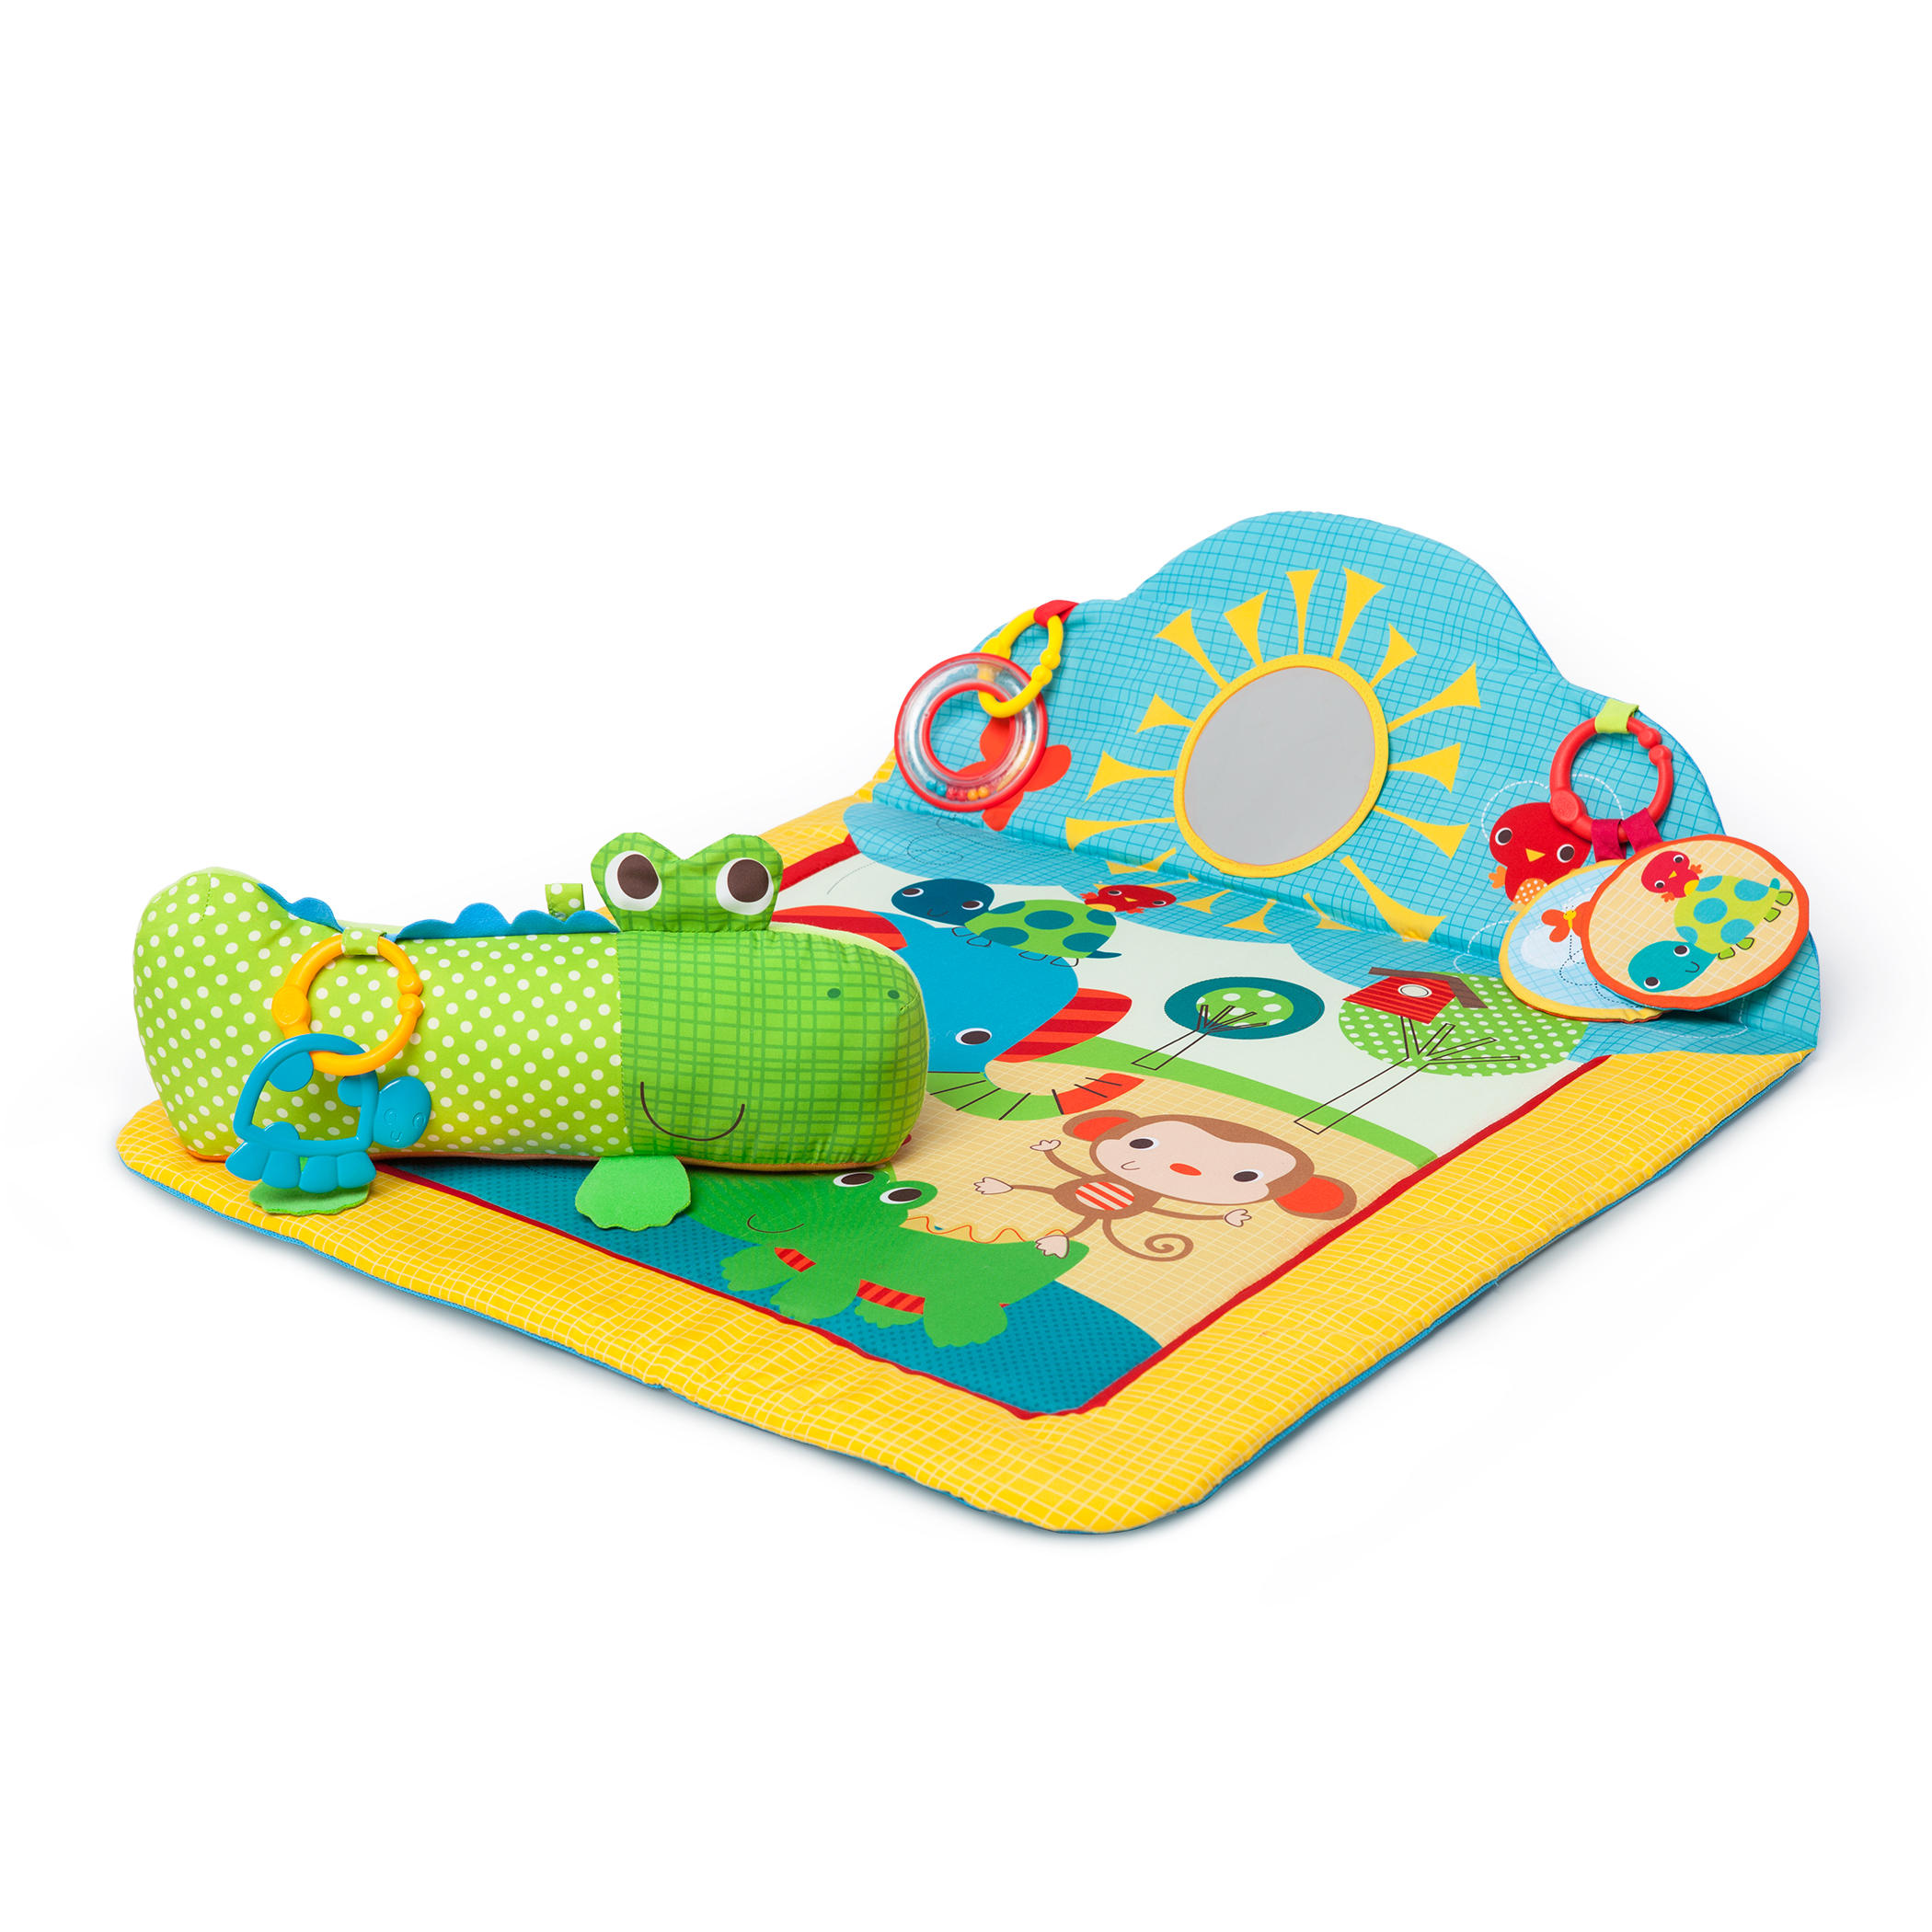 Cuddly Crocodile™ Play Mat